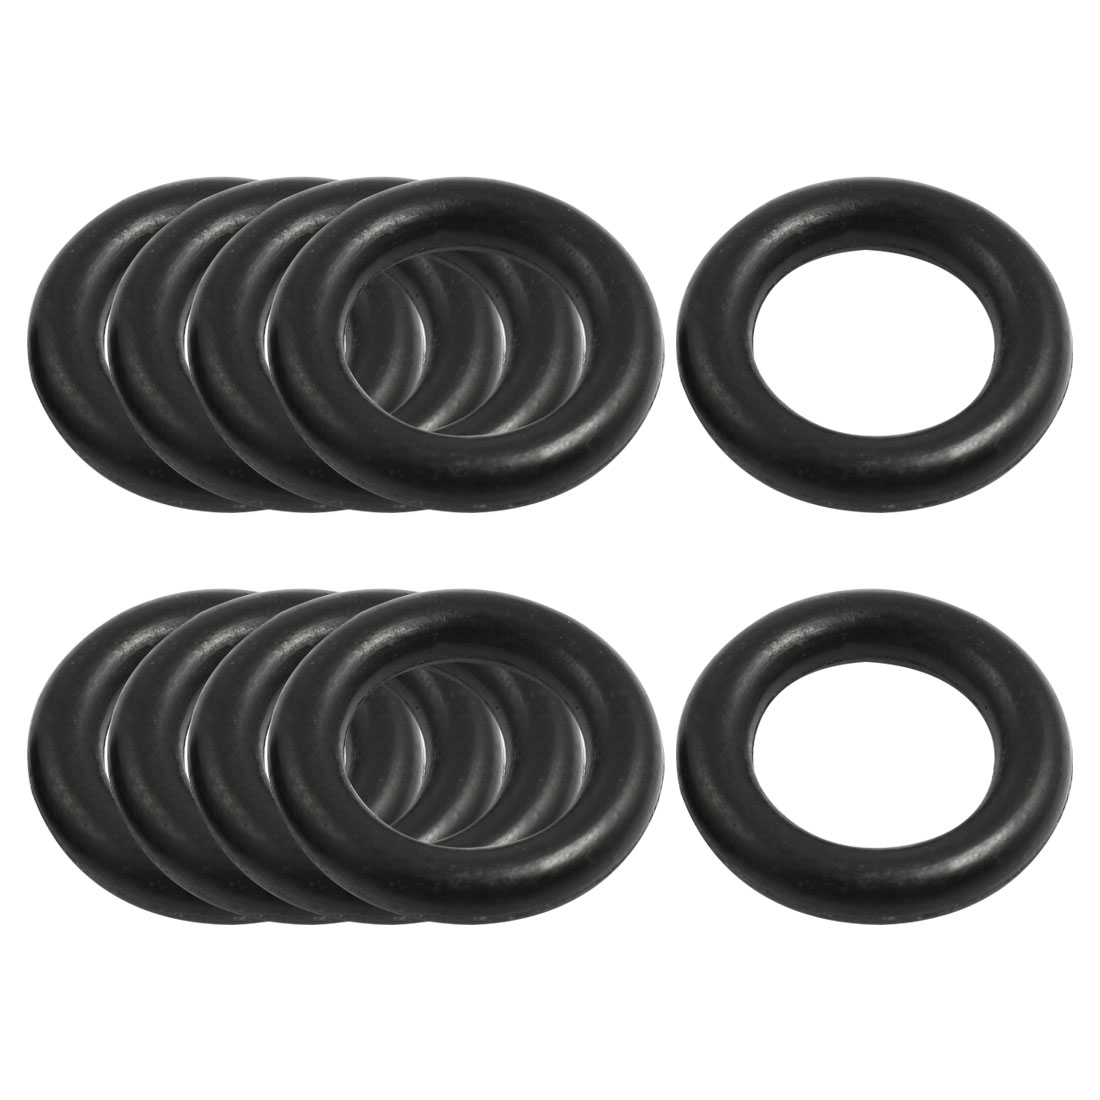 10 Pcs Nitrile Rubber O Type Sealing Ring Gasket Grommets Black 5mm x 26mm